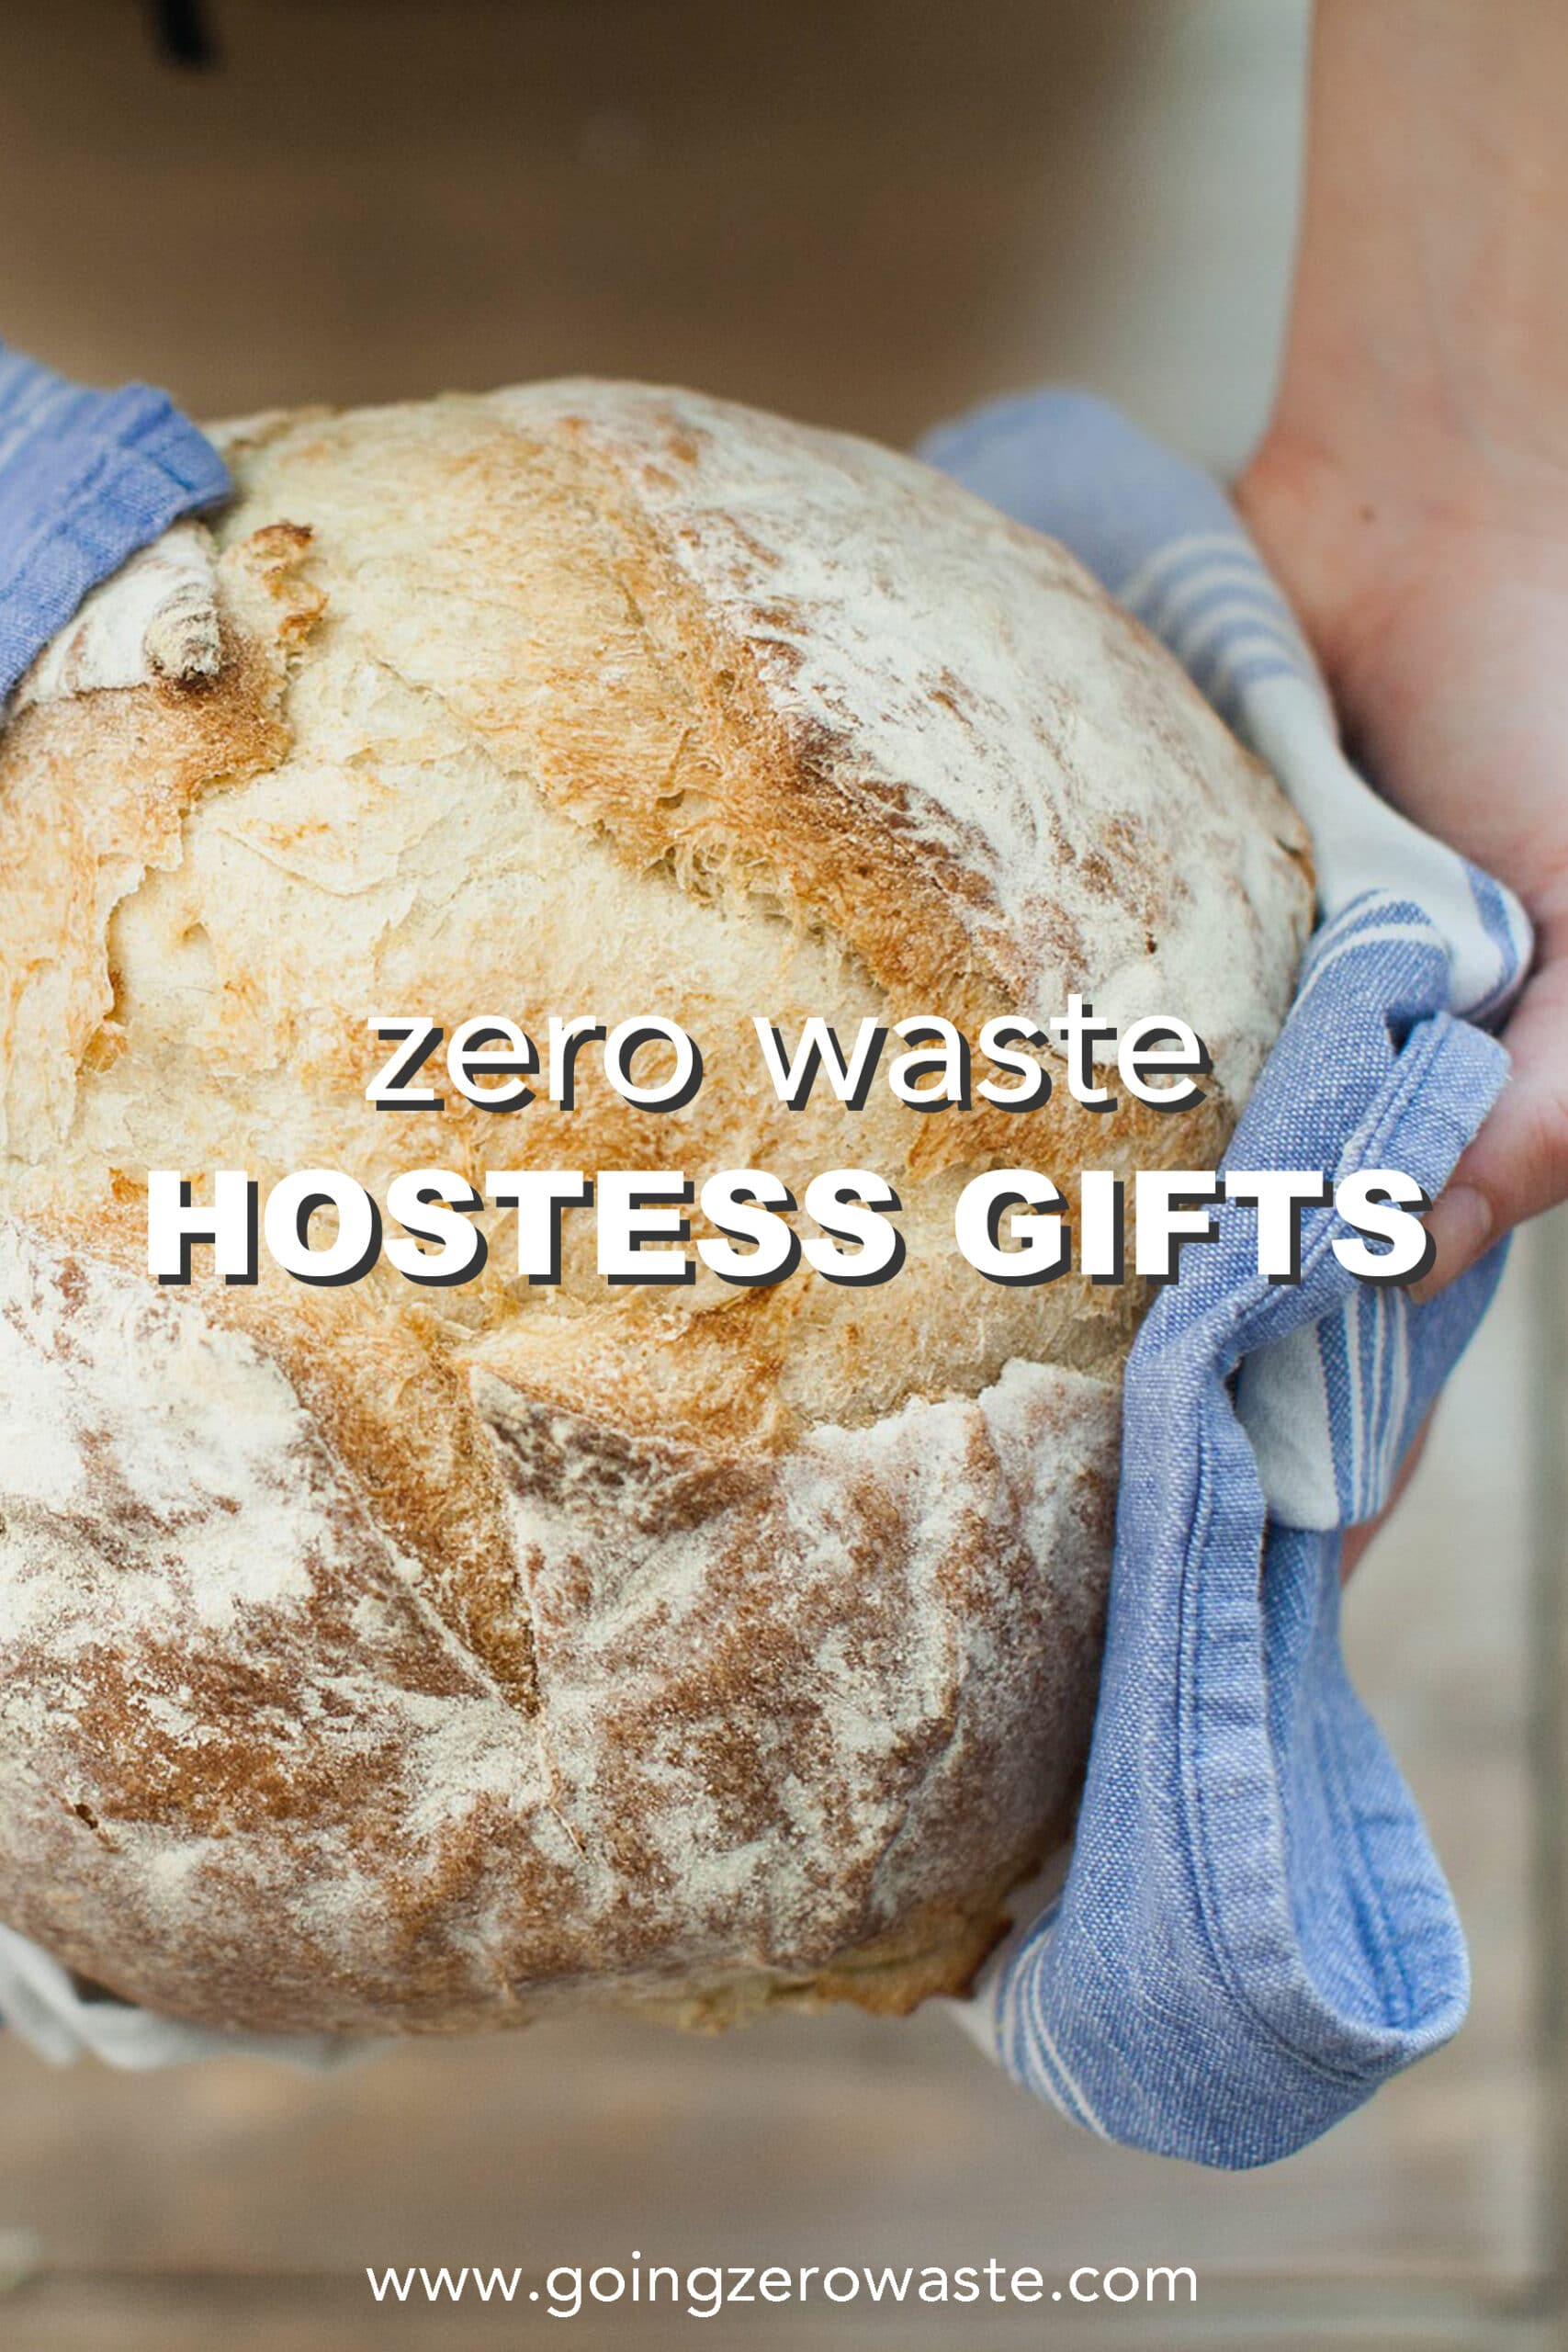 Zero Waste Hostess Gifts